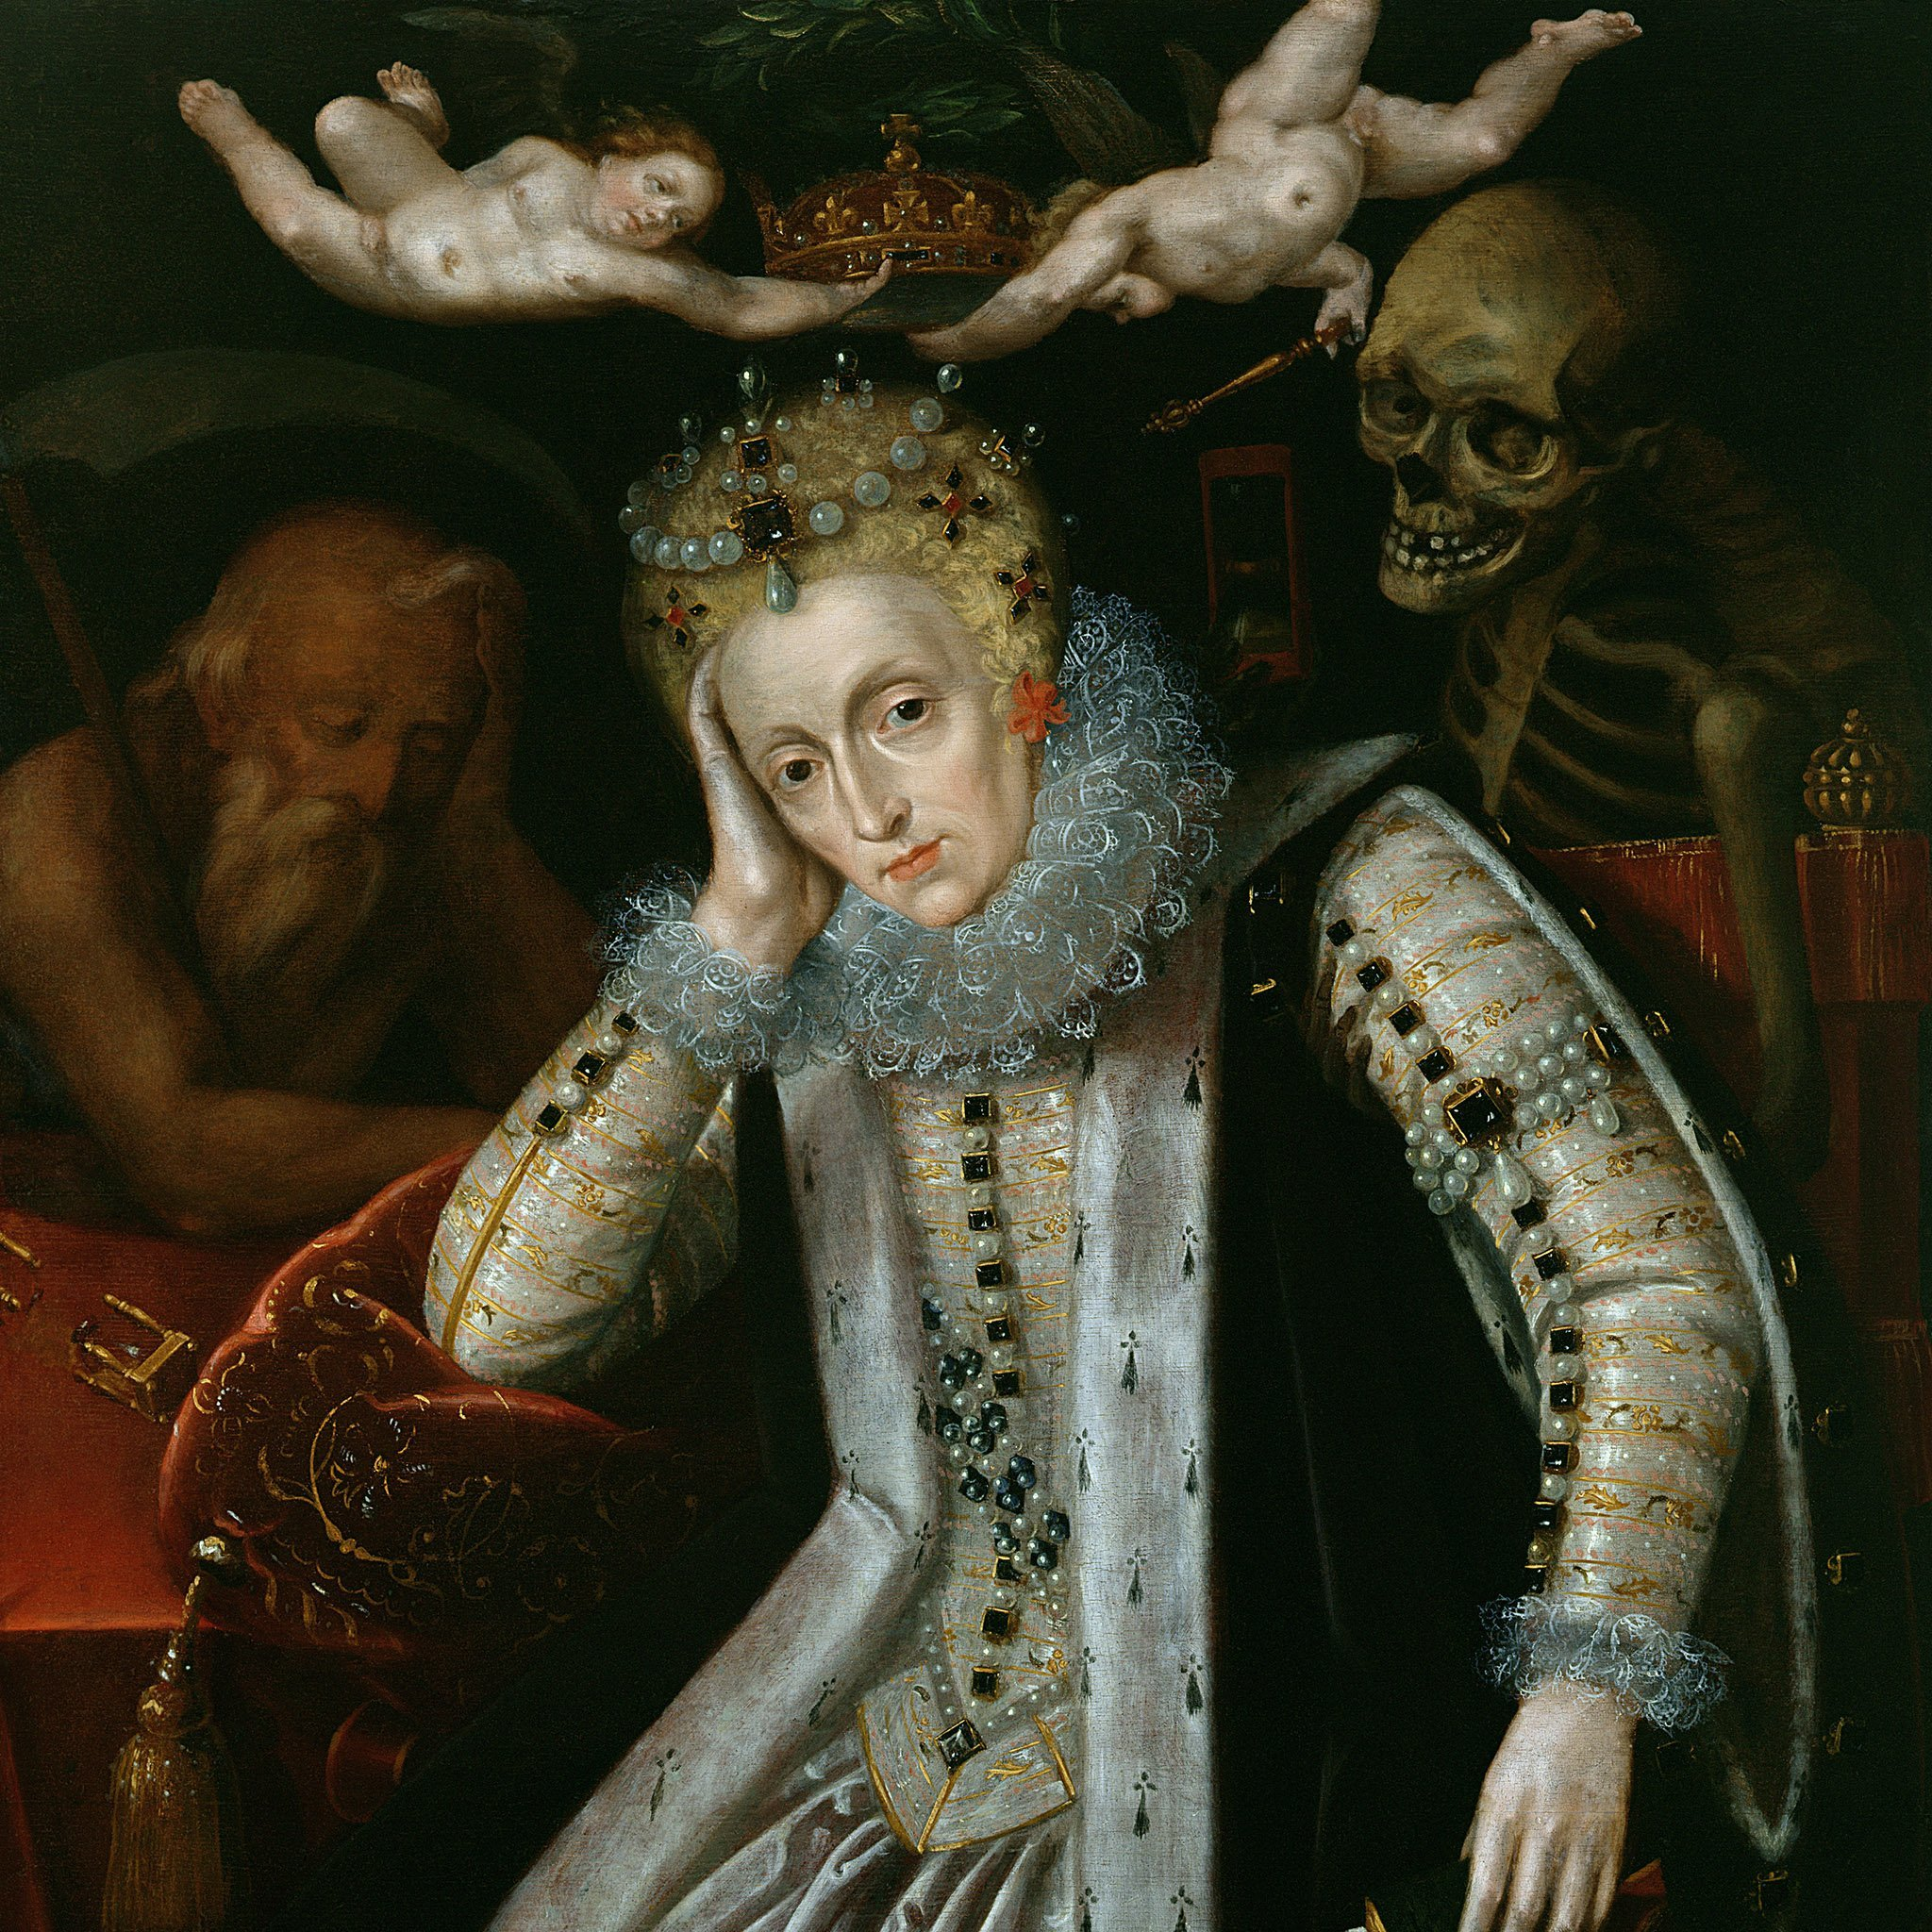 A painting of Queen Elizabeth I with Old Father Time to her right, and a skeleton peering over her left shoulder.